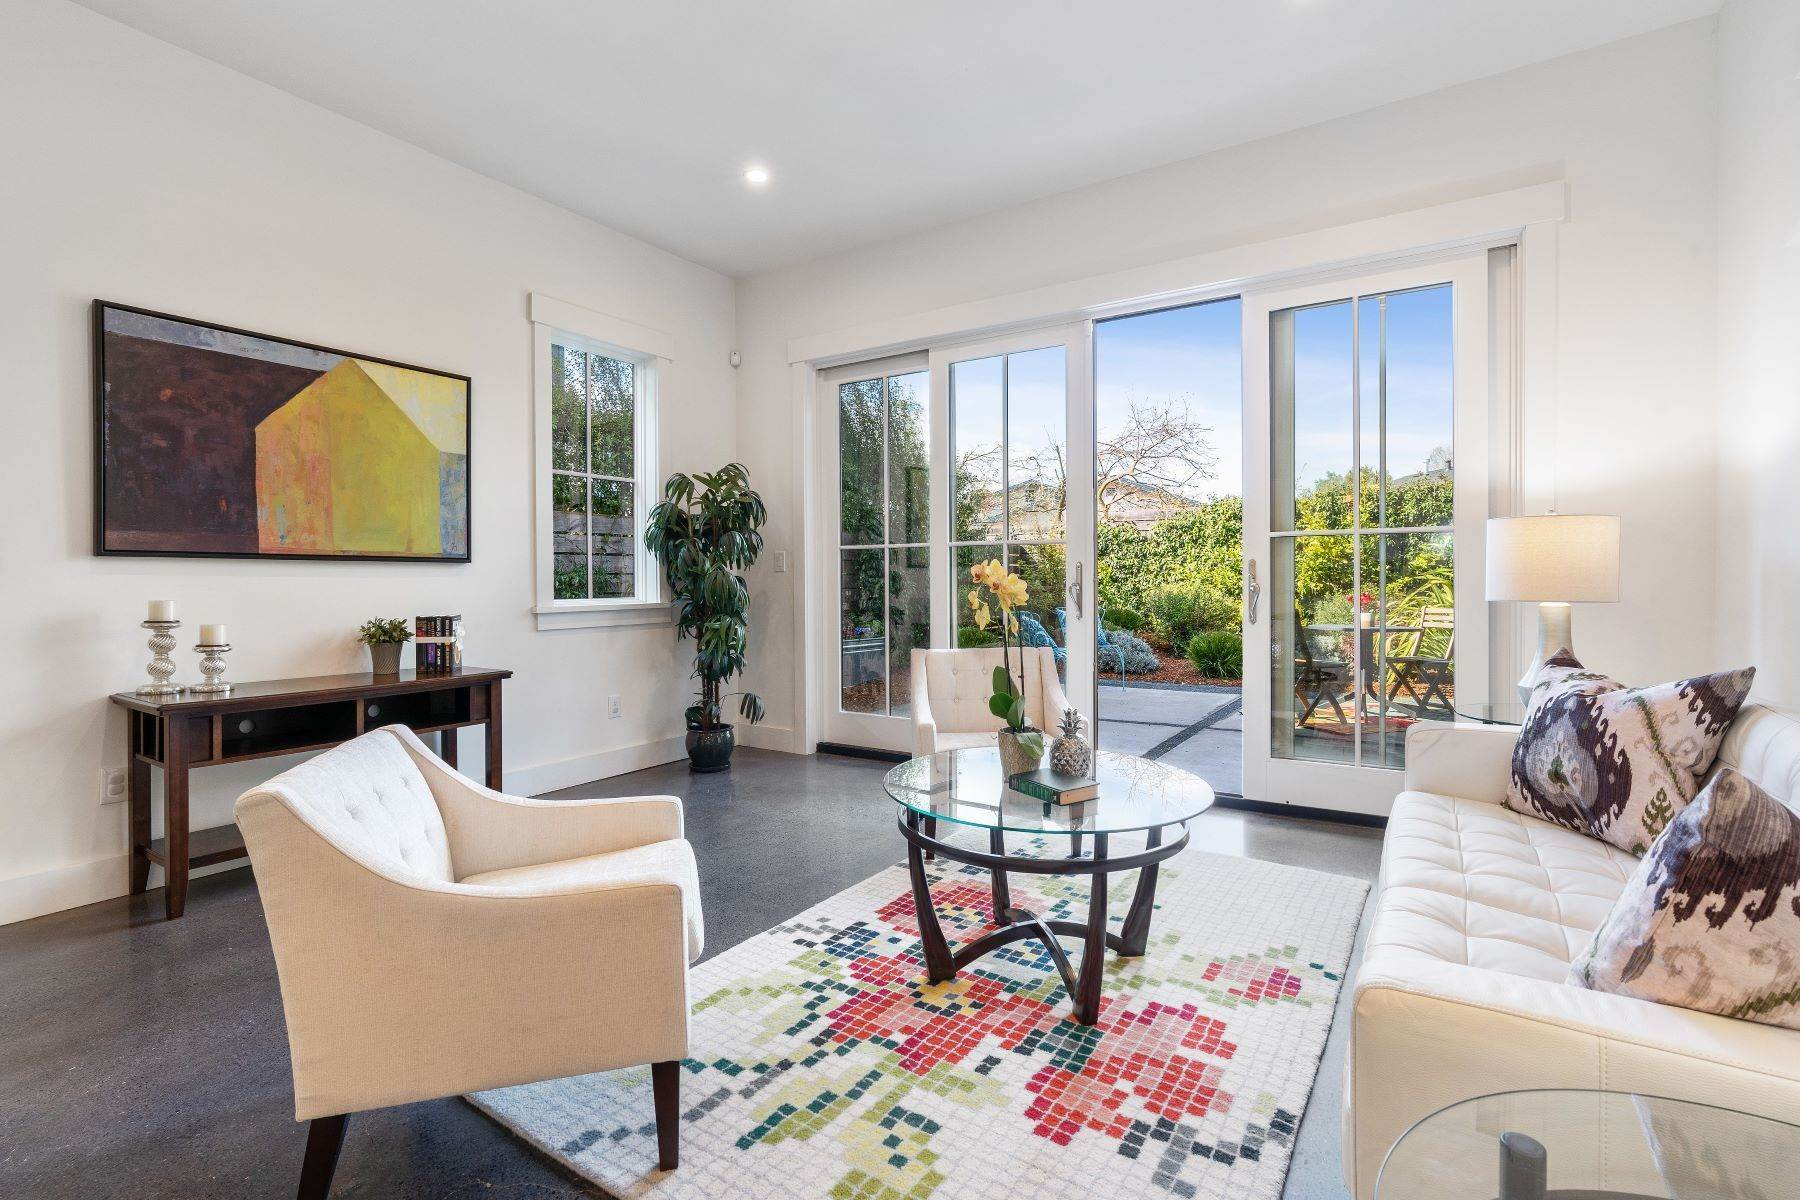 7. Single Family Homes for Sale at Modern Meets Comfort 888 59th Street Oakland, California 94608 United States